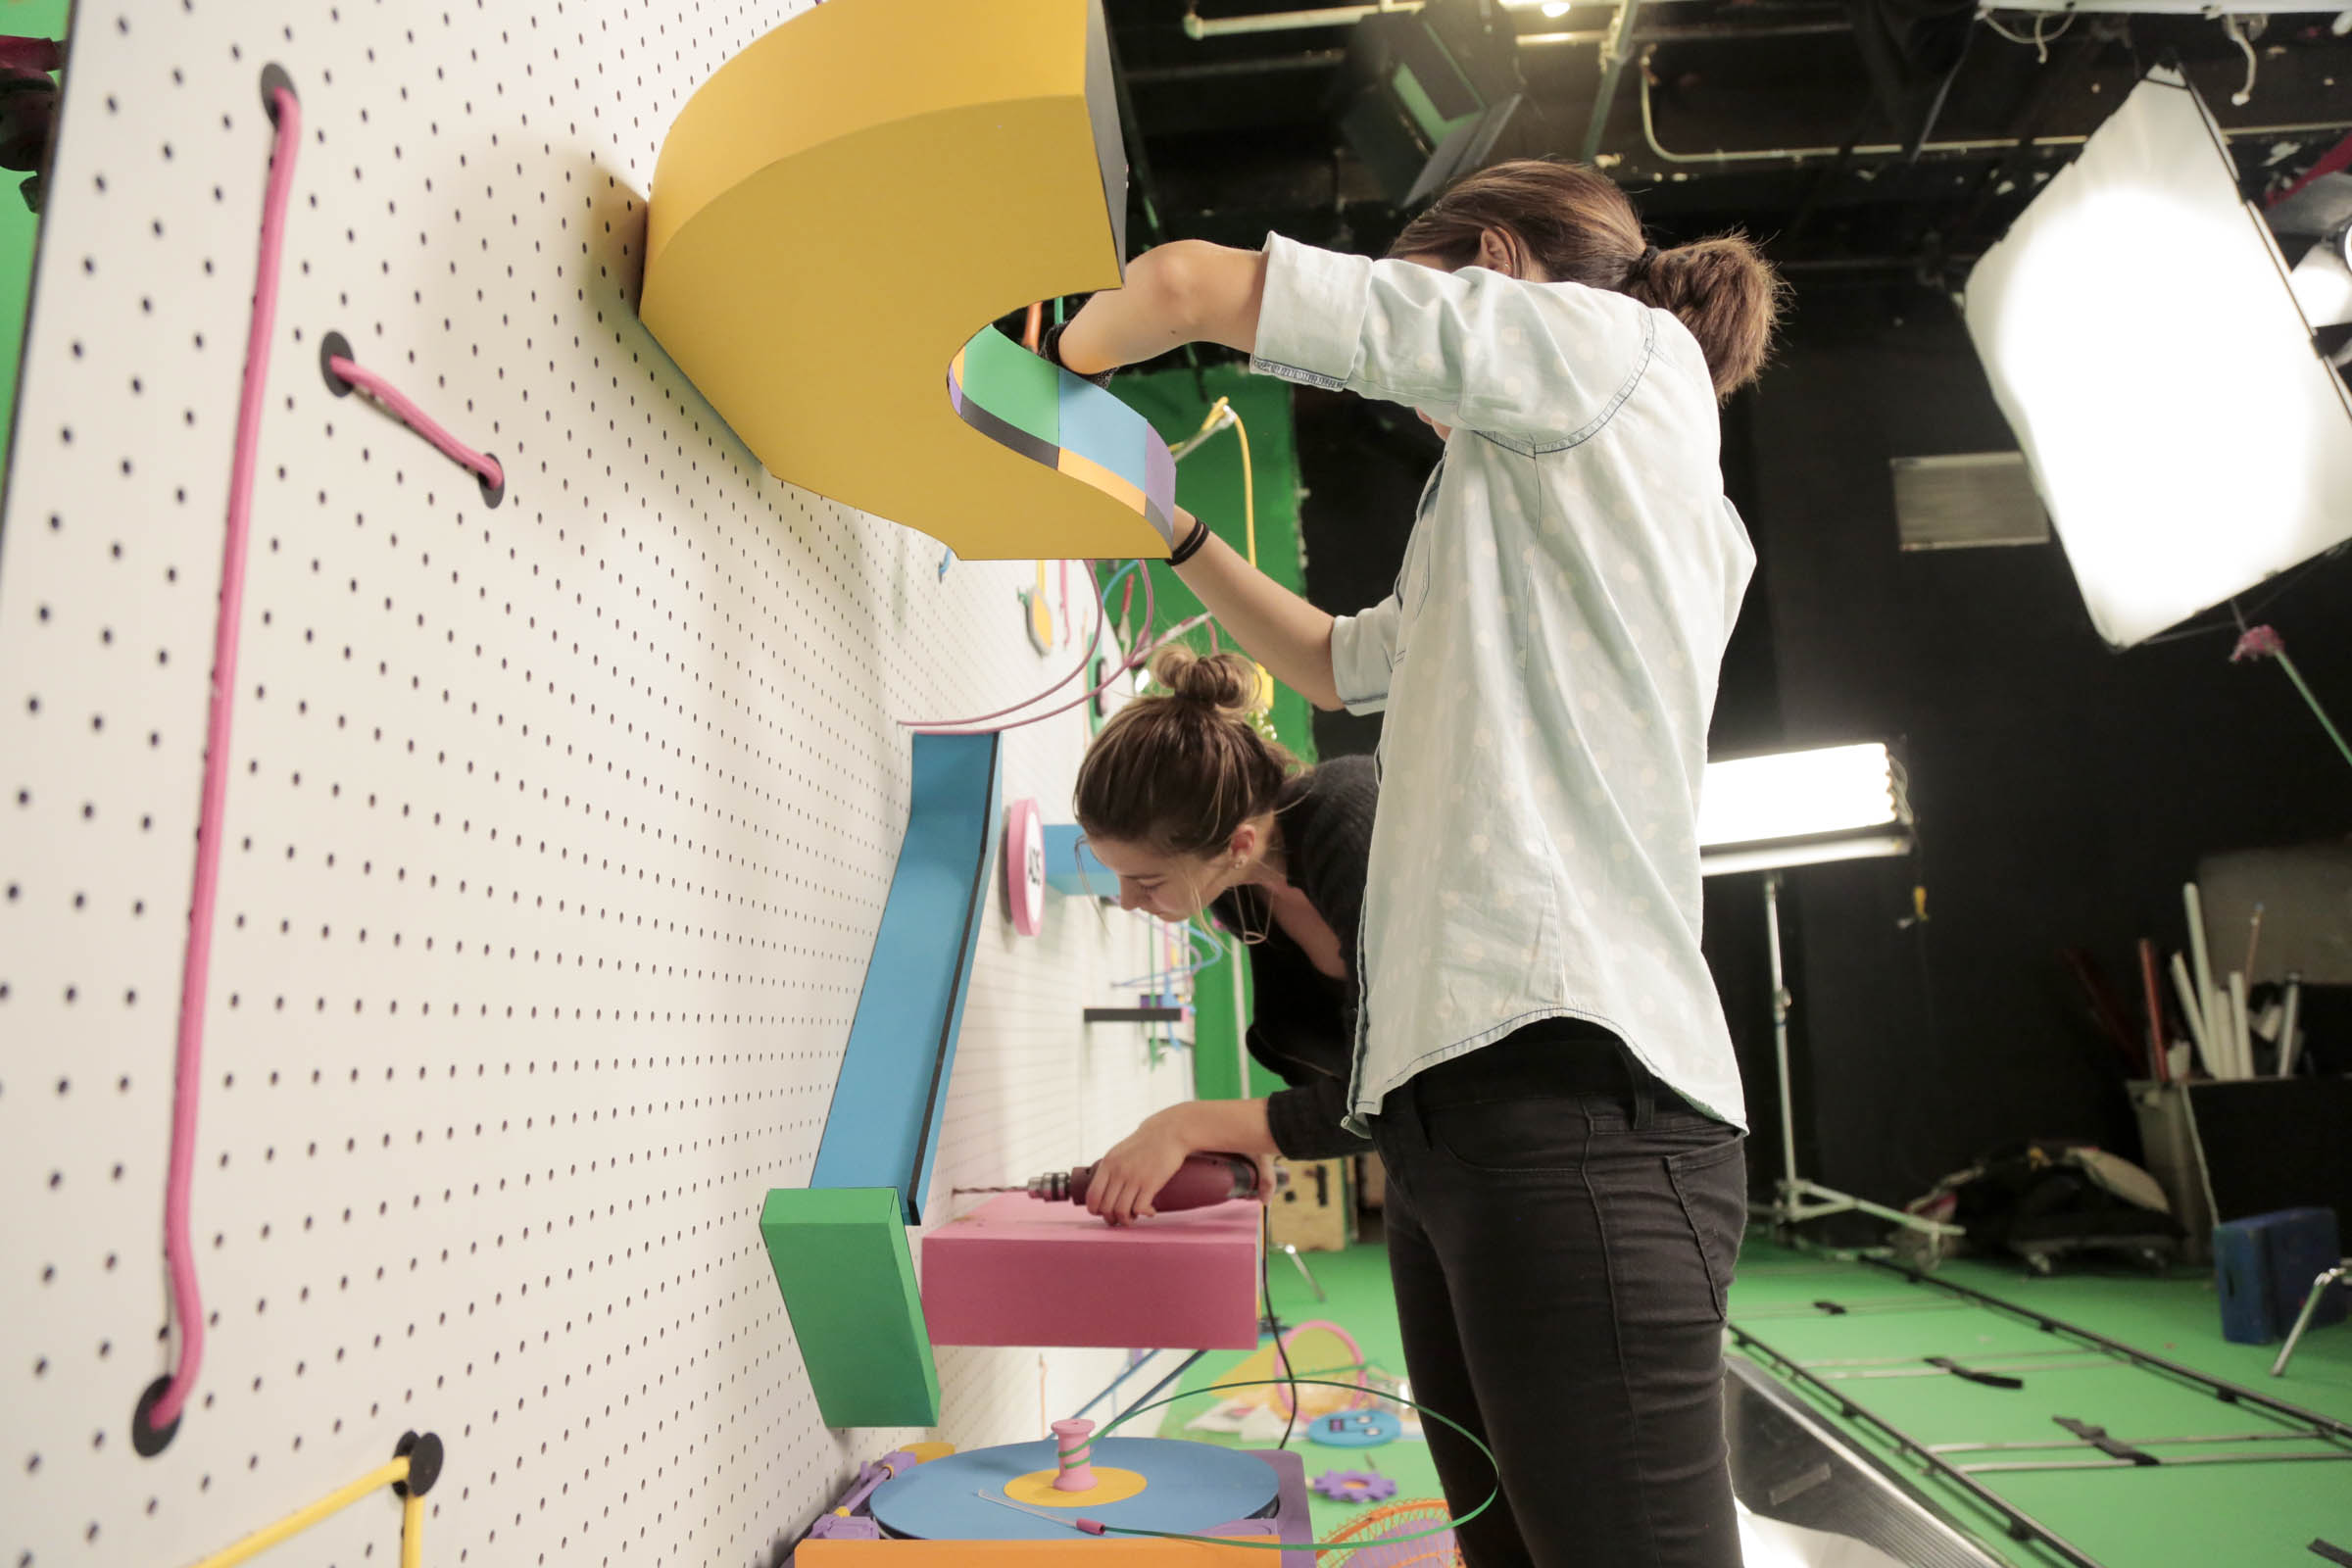 Toca TV Spot: Art Director Julie Wilkinson building Rube Goldberg machine